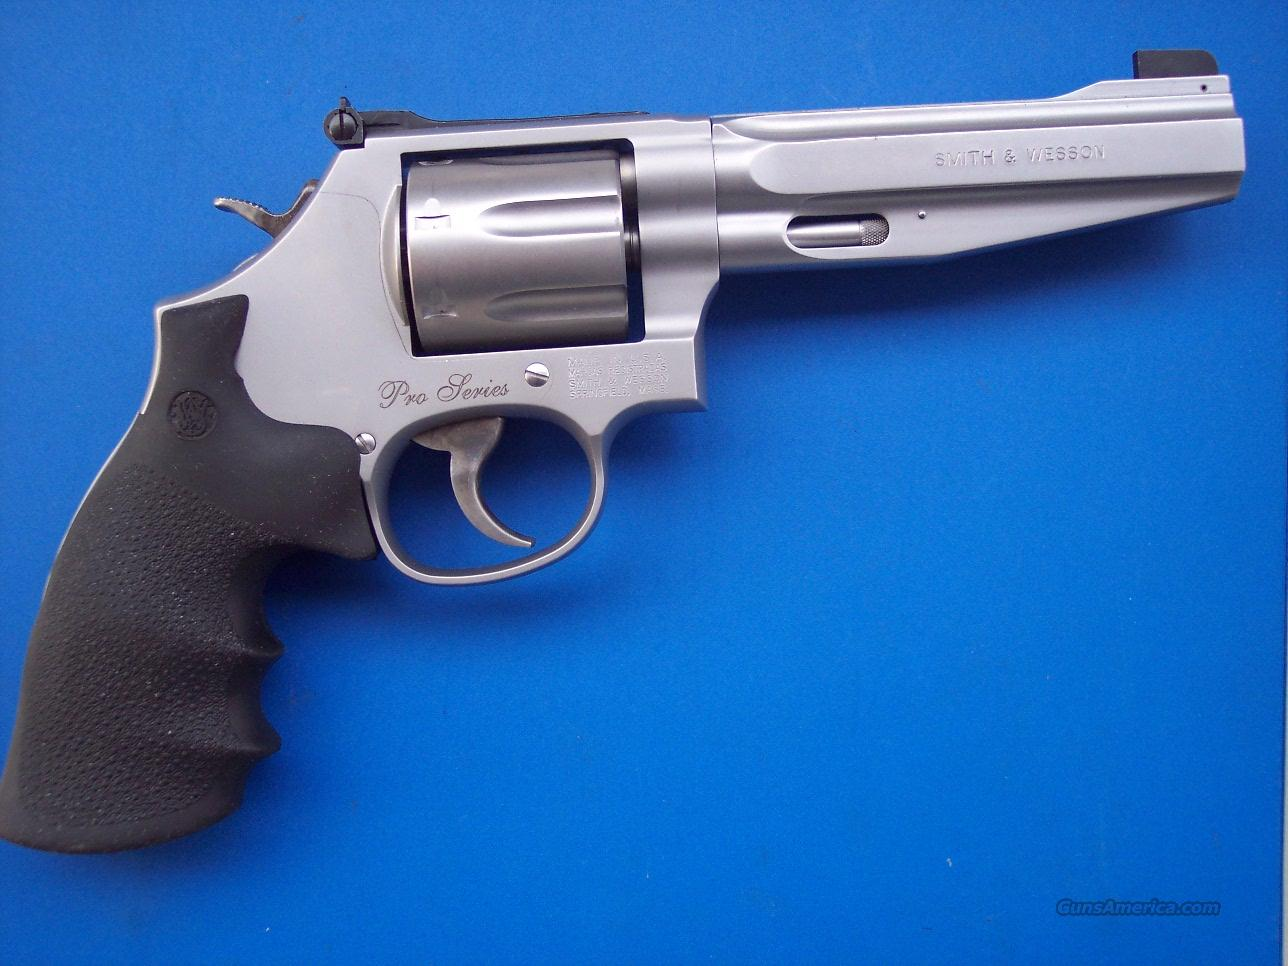 "Smith & Wesson 686 Pro Series 7 Shot 5"" .357 *NEW*  Guns > Pistols > Smith & Wesson Revolvers > Full Frame Revolver"